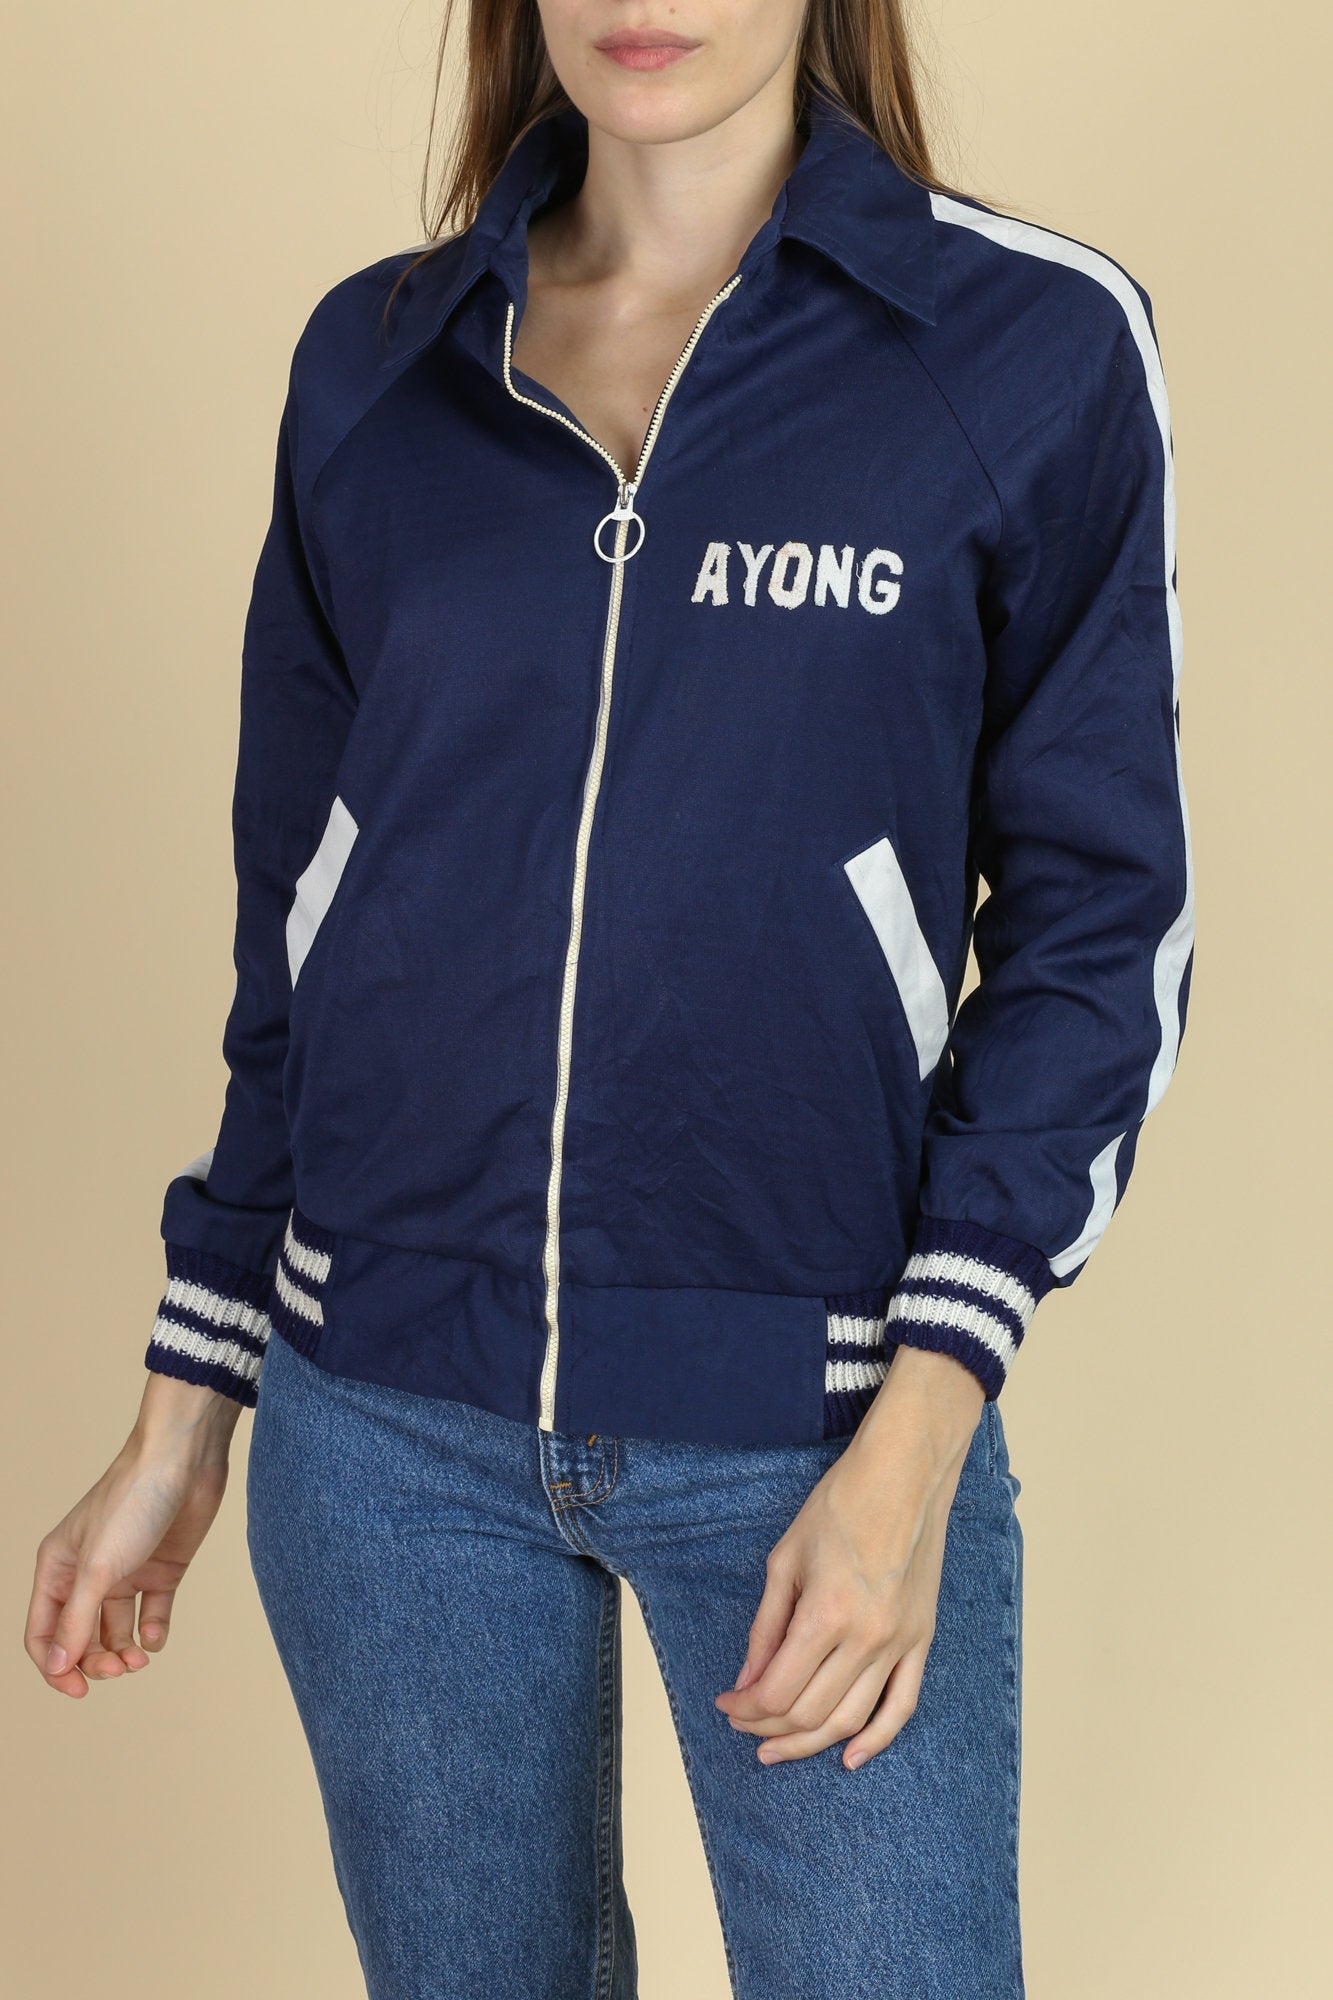 Retro 70s Ring Zip Track Jacket - Small